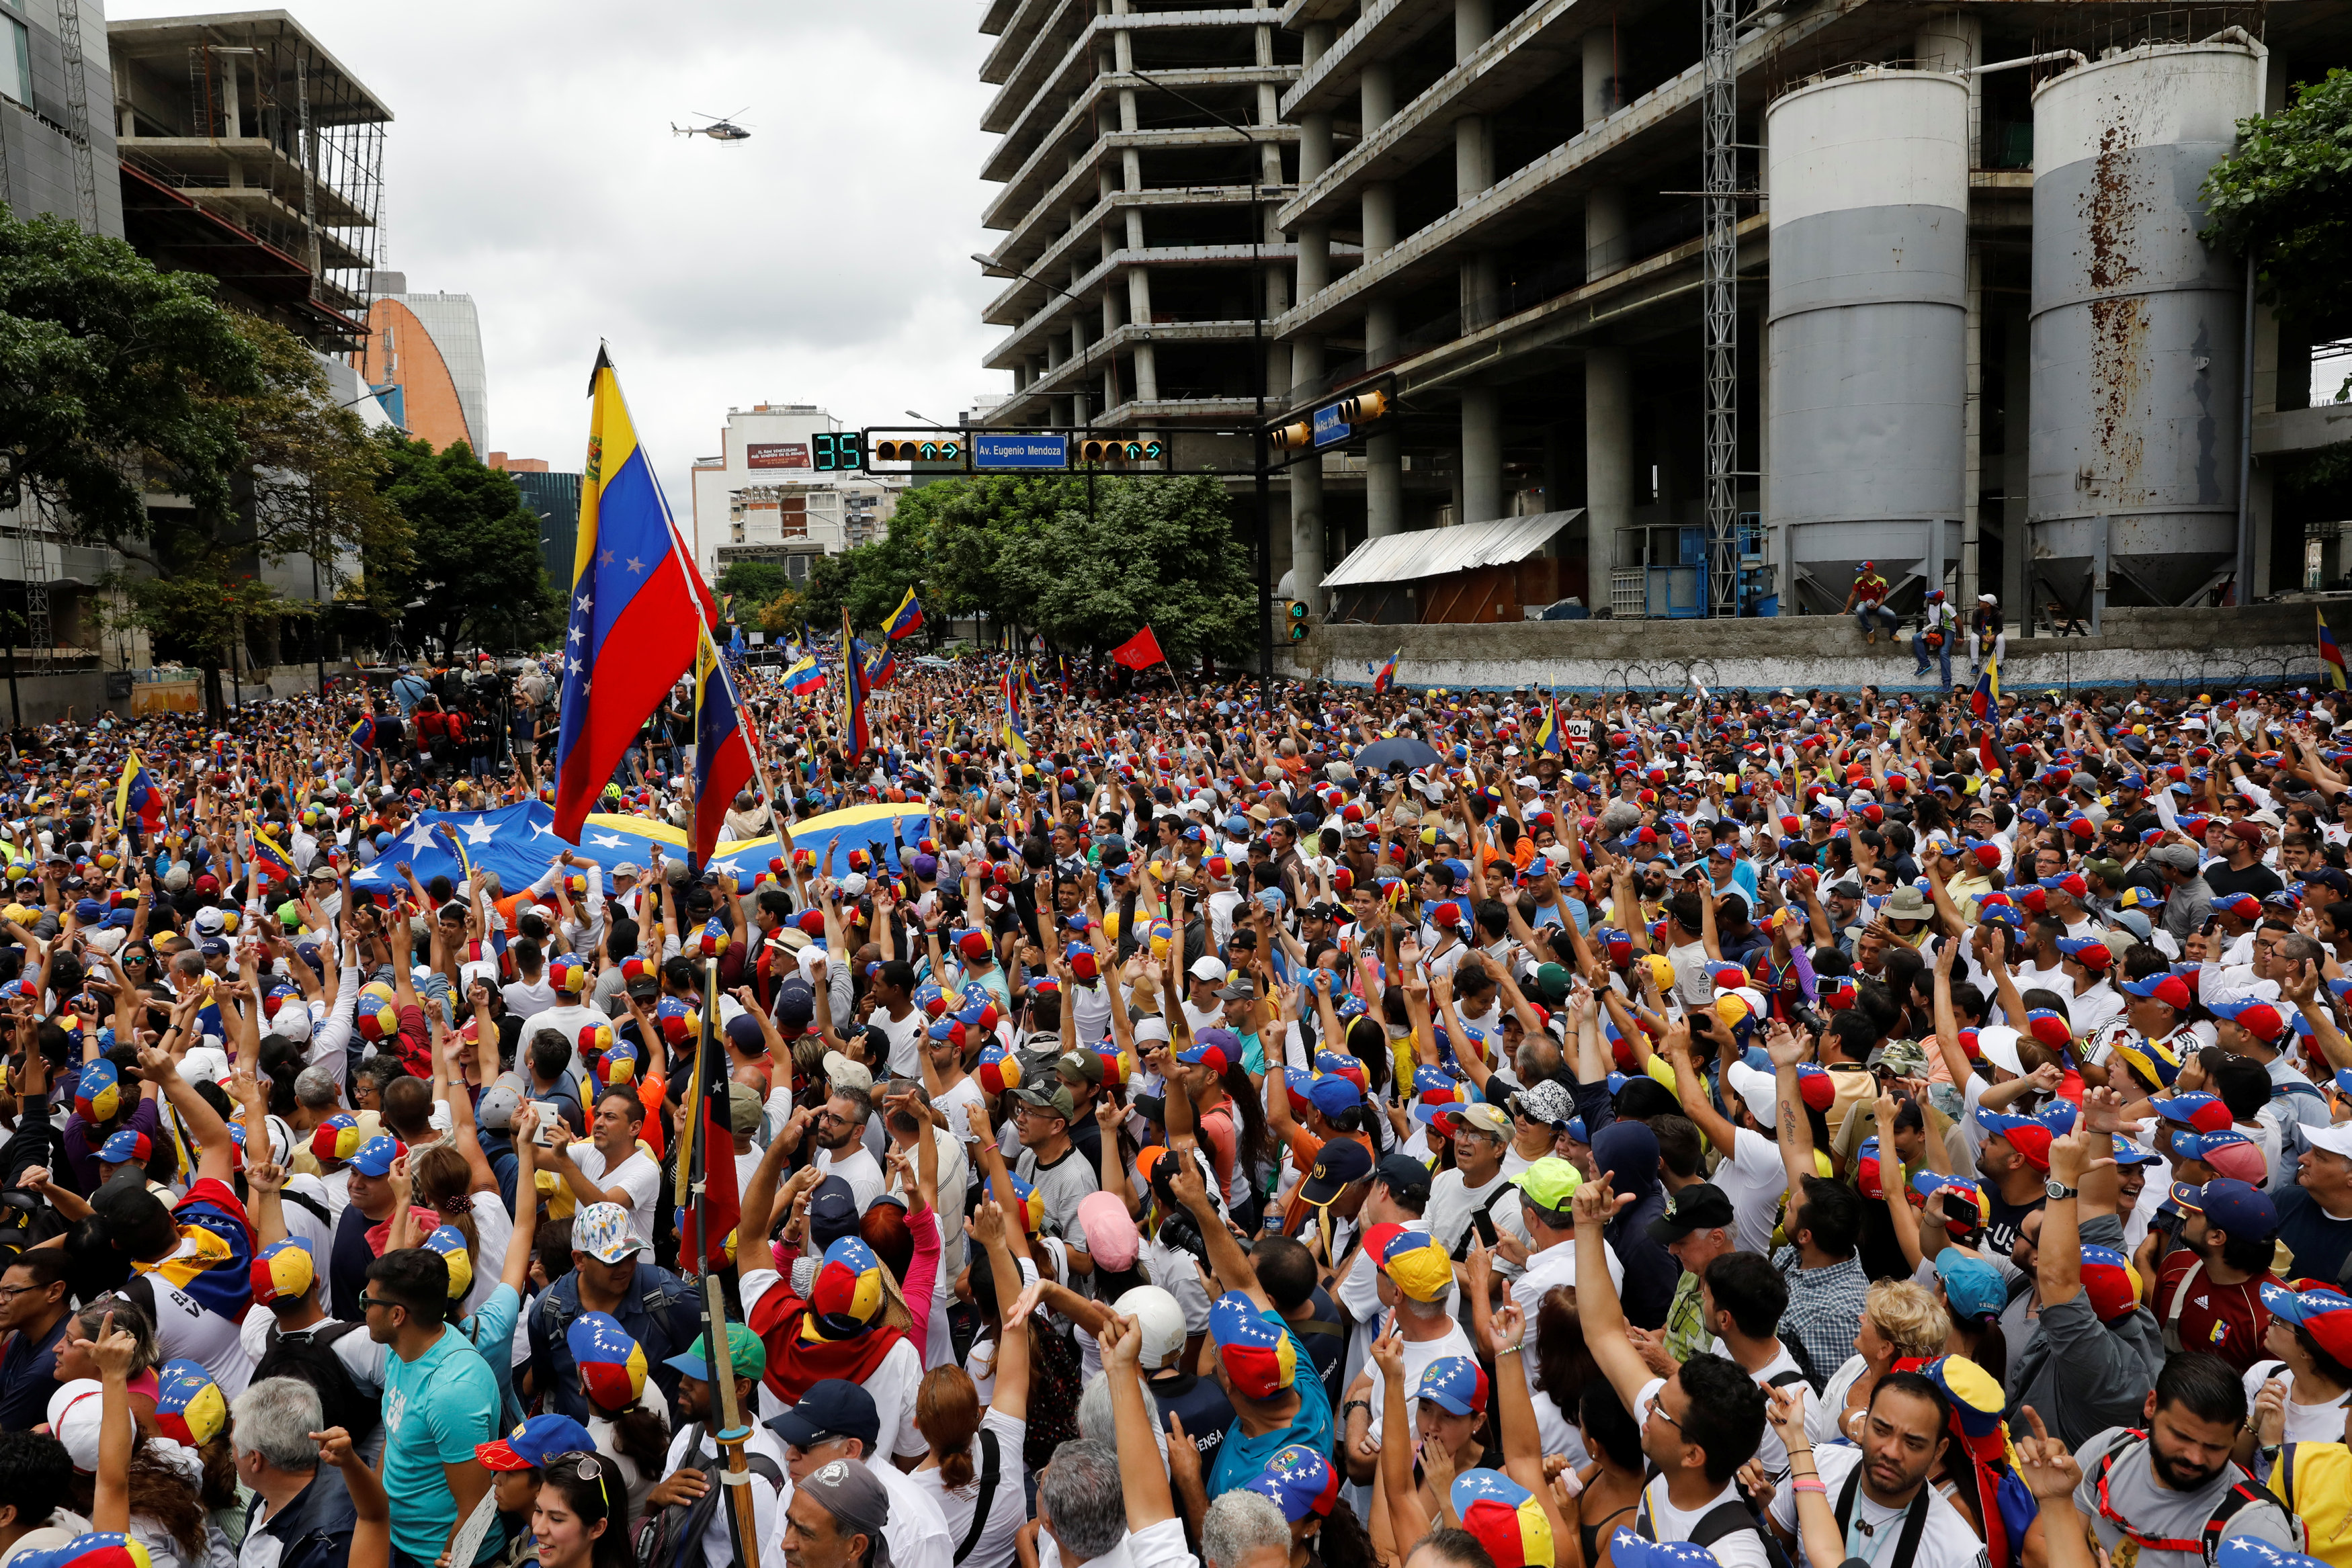 Demonstrators wave as the helicopter passes while rallying against Venezuela's President Nicolas Maduro in Caracas, Venezuela on May 1, 2017. (REUTERS/Carlos Garcia Rawlins)